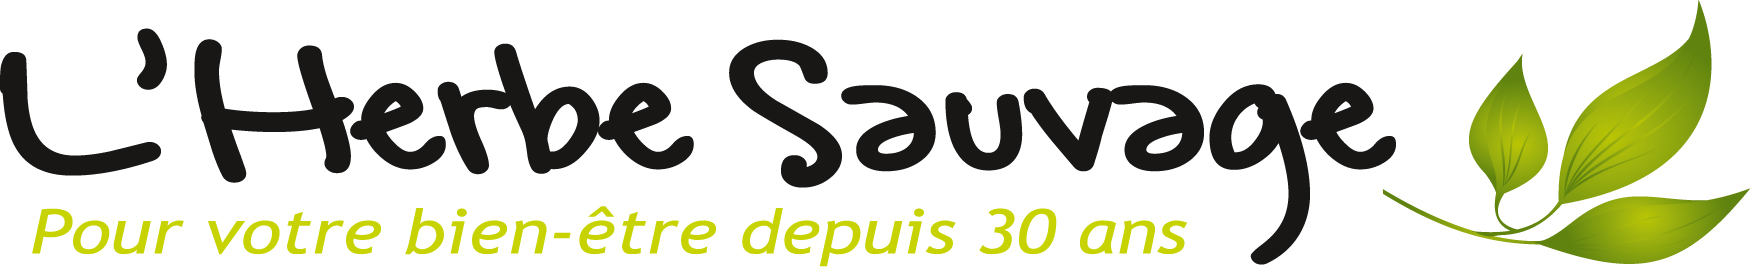 C logo herbe sauvage - L'association - OCA Bonneville